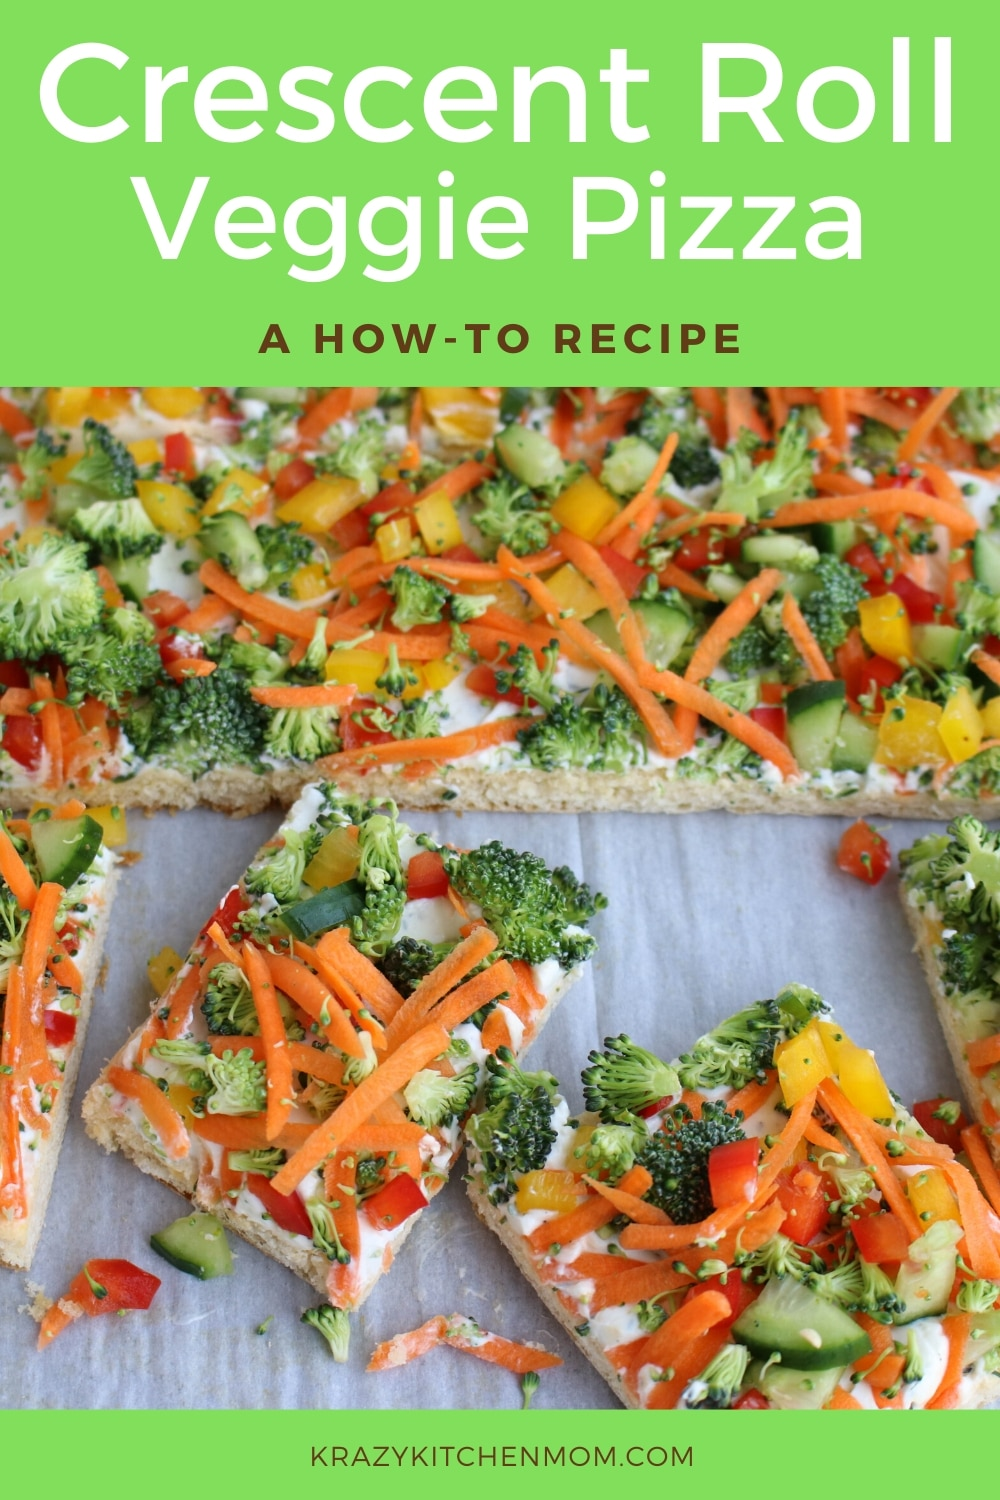 Crescent Roll Veggie Pizza a fresh way to eat veggies. It's made with refrigerator crescent roll dough, homemade dill dip and lots of fresh vegetables. I'd say it's a classic! via @krazykitchenmom